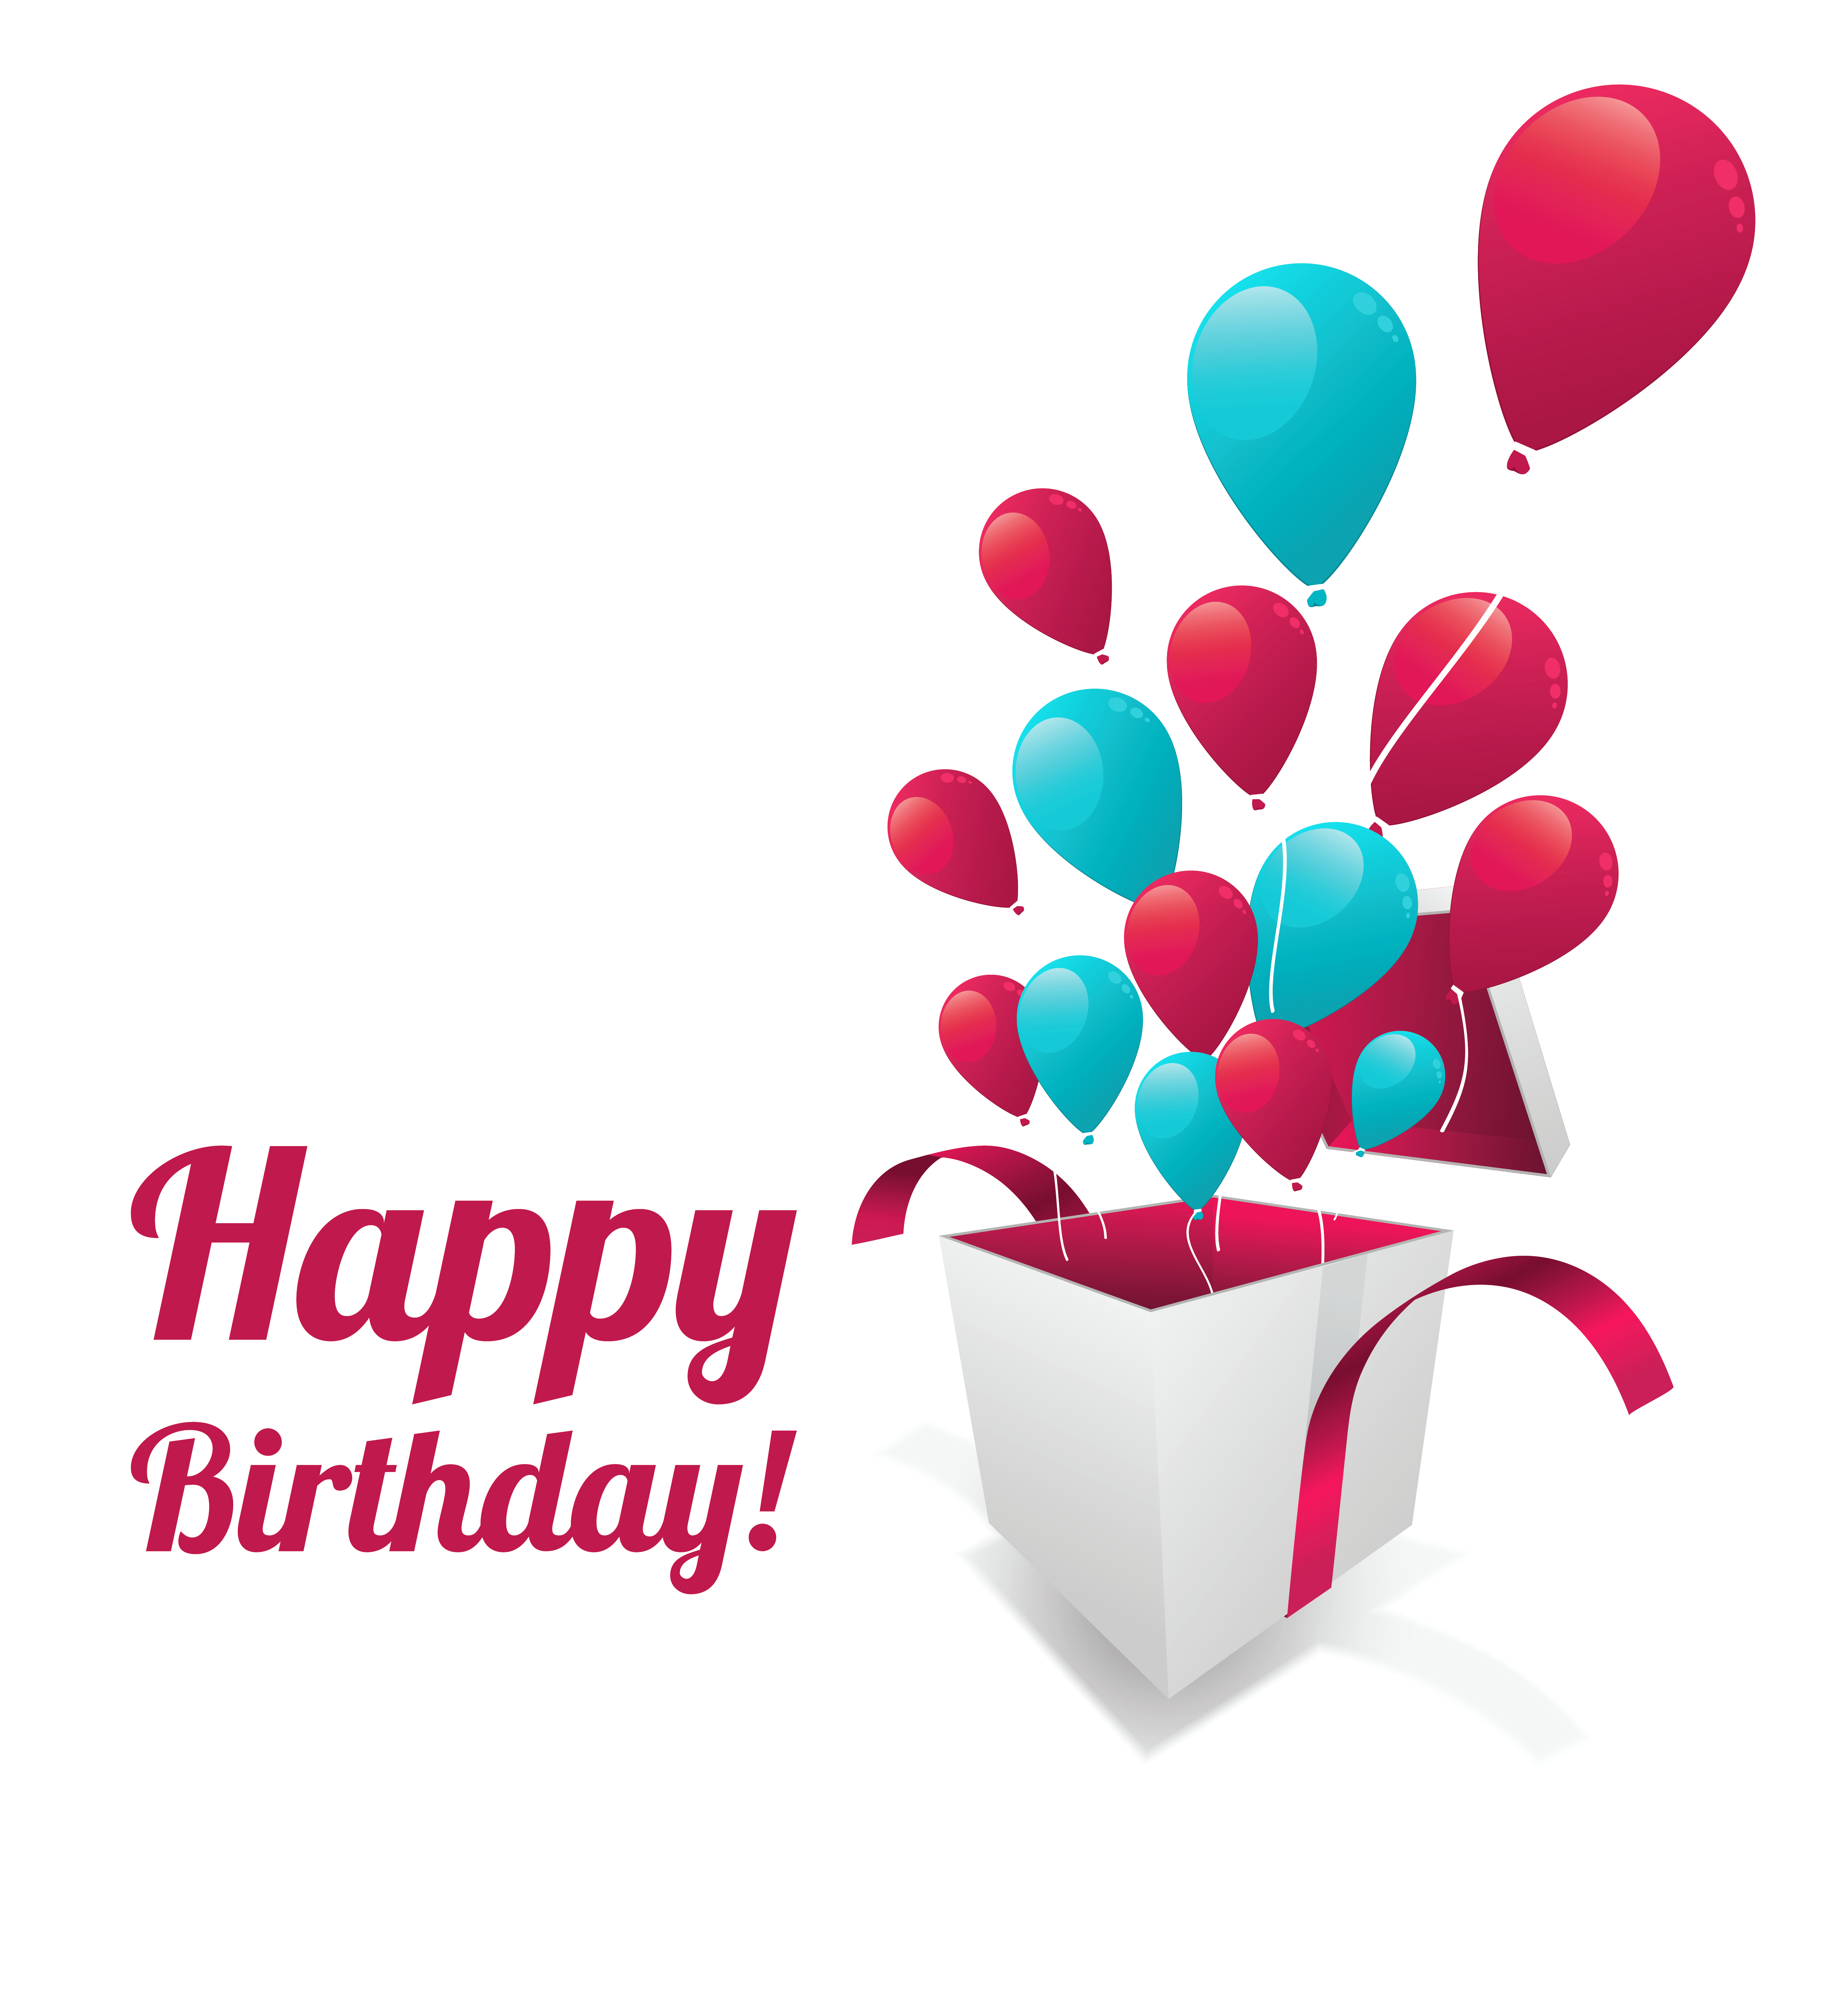 Couple clipart happy birthday. Text sticker png picture